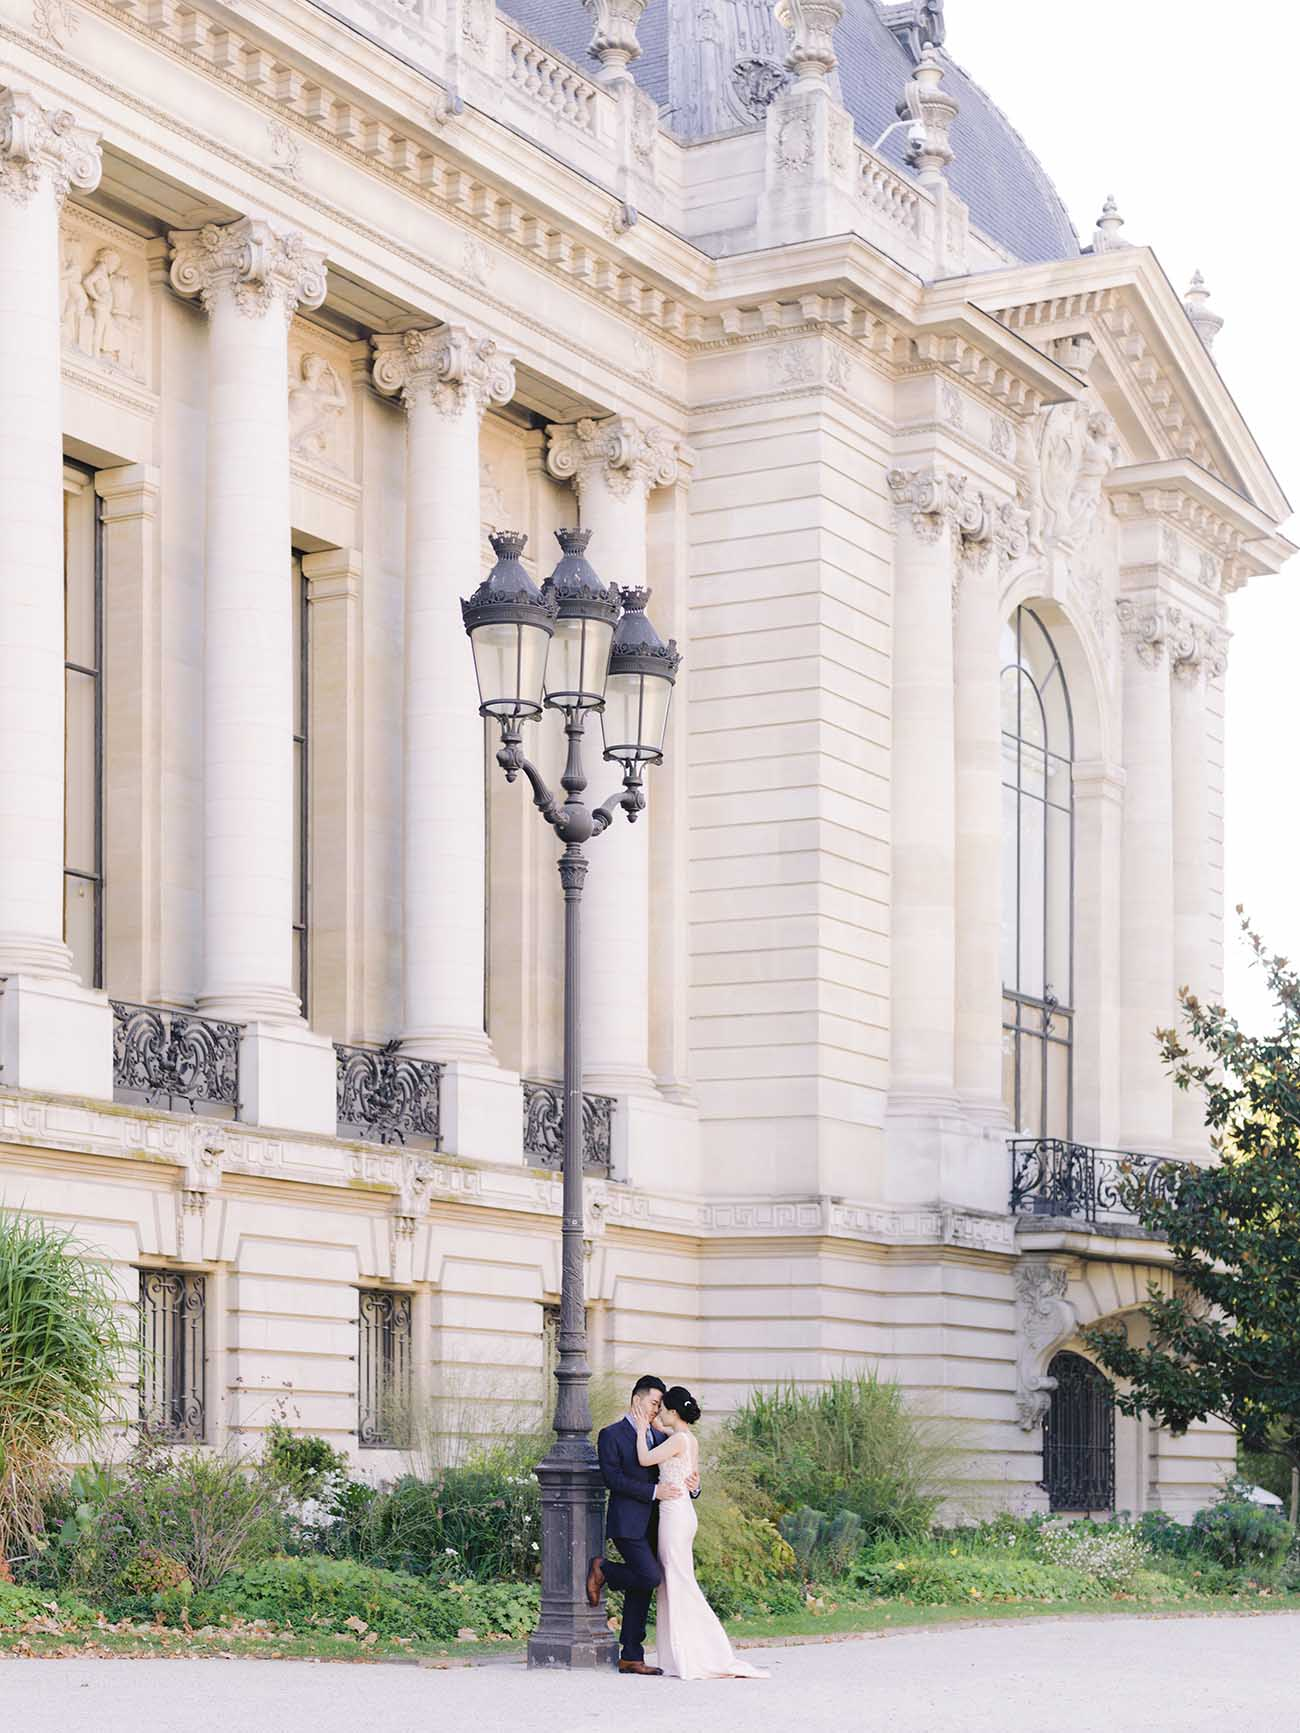 A couple kissing in front of the Petit Palais in Paris